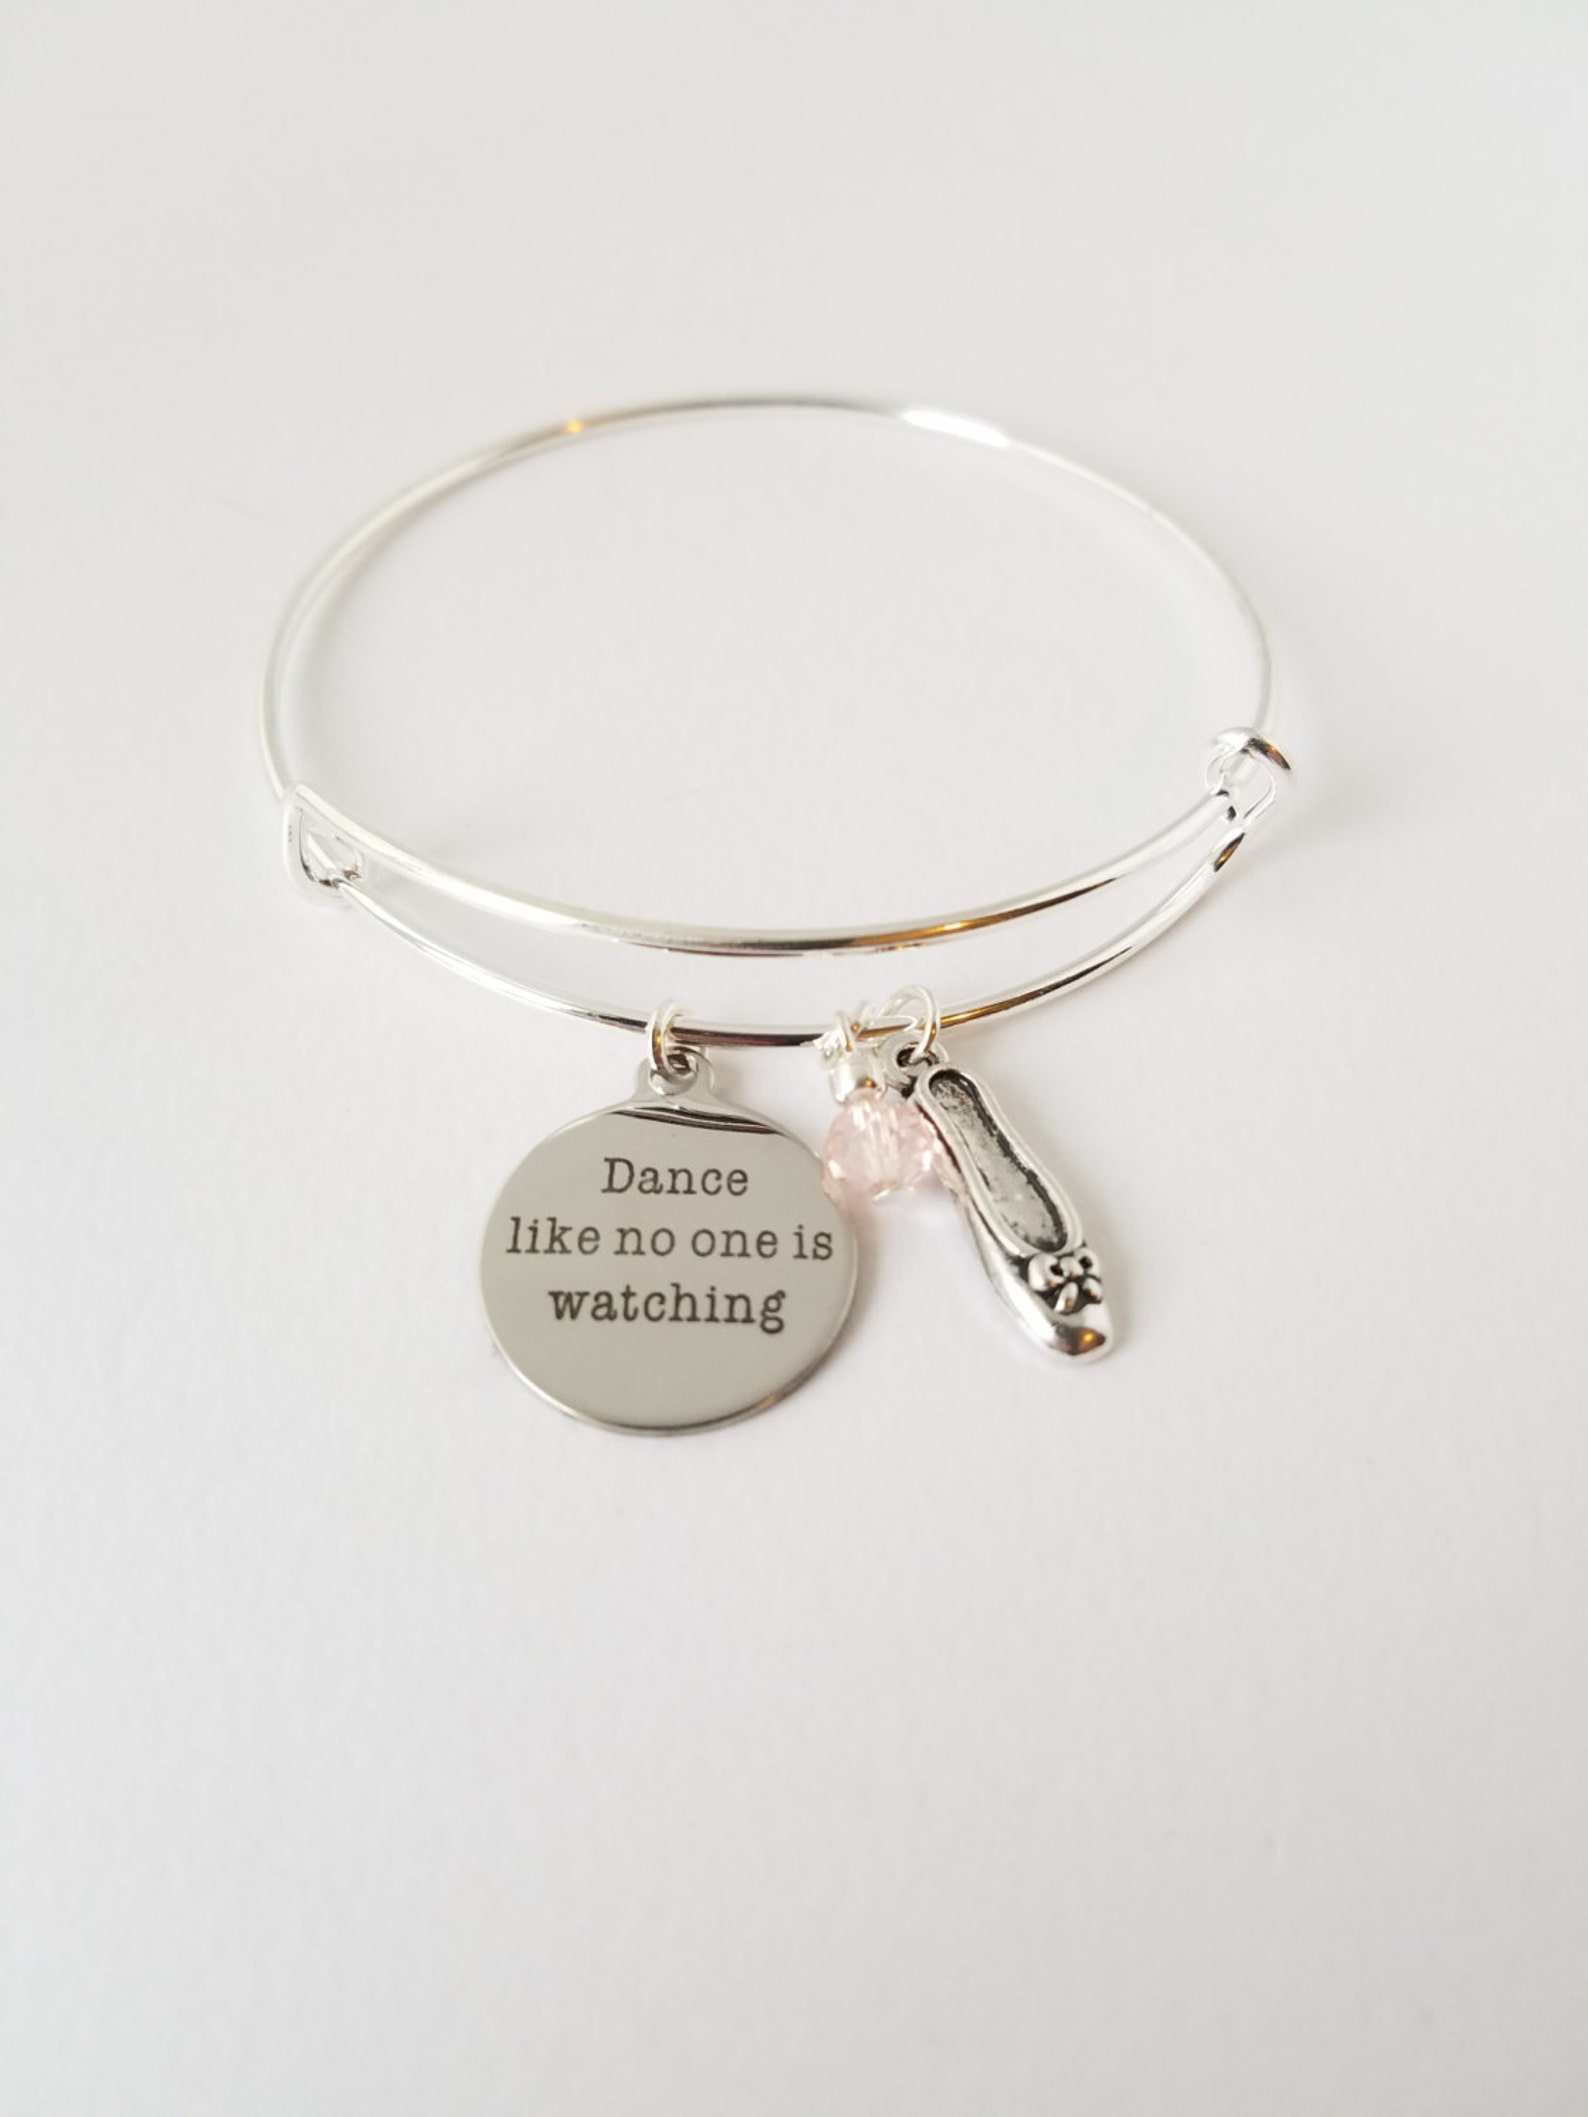 dance like no one is watching - inspirational charm with ballet shoe and colored glass bead - love- dream - hope